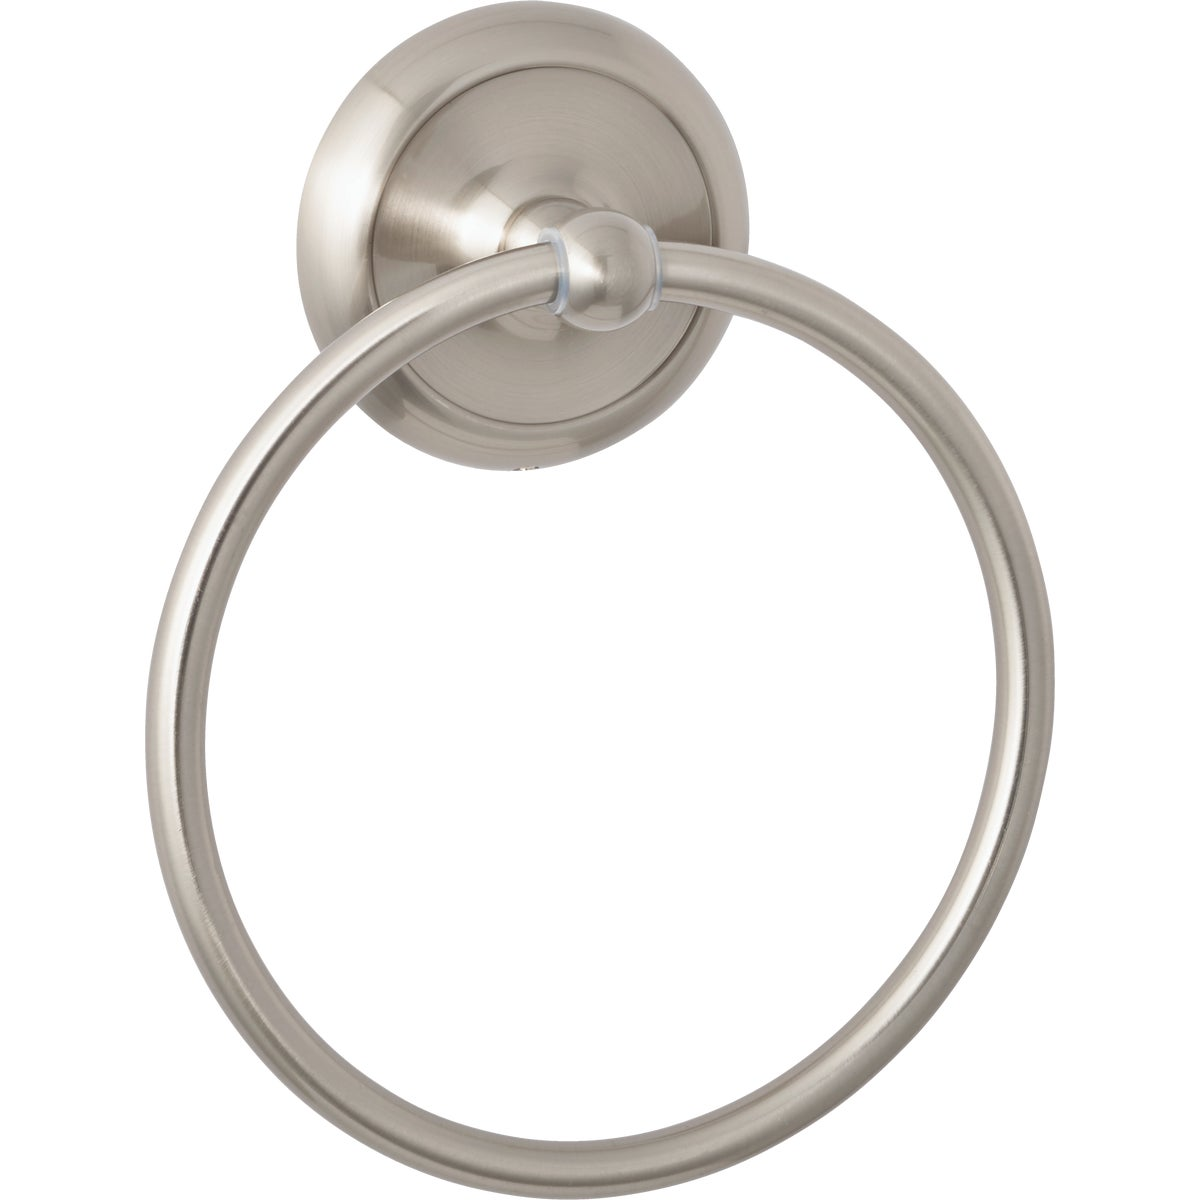 BN TOWEL RING - 456866 by Do it Best